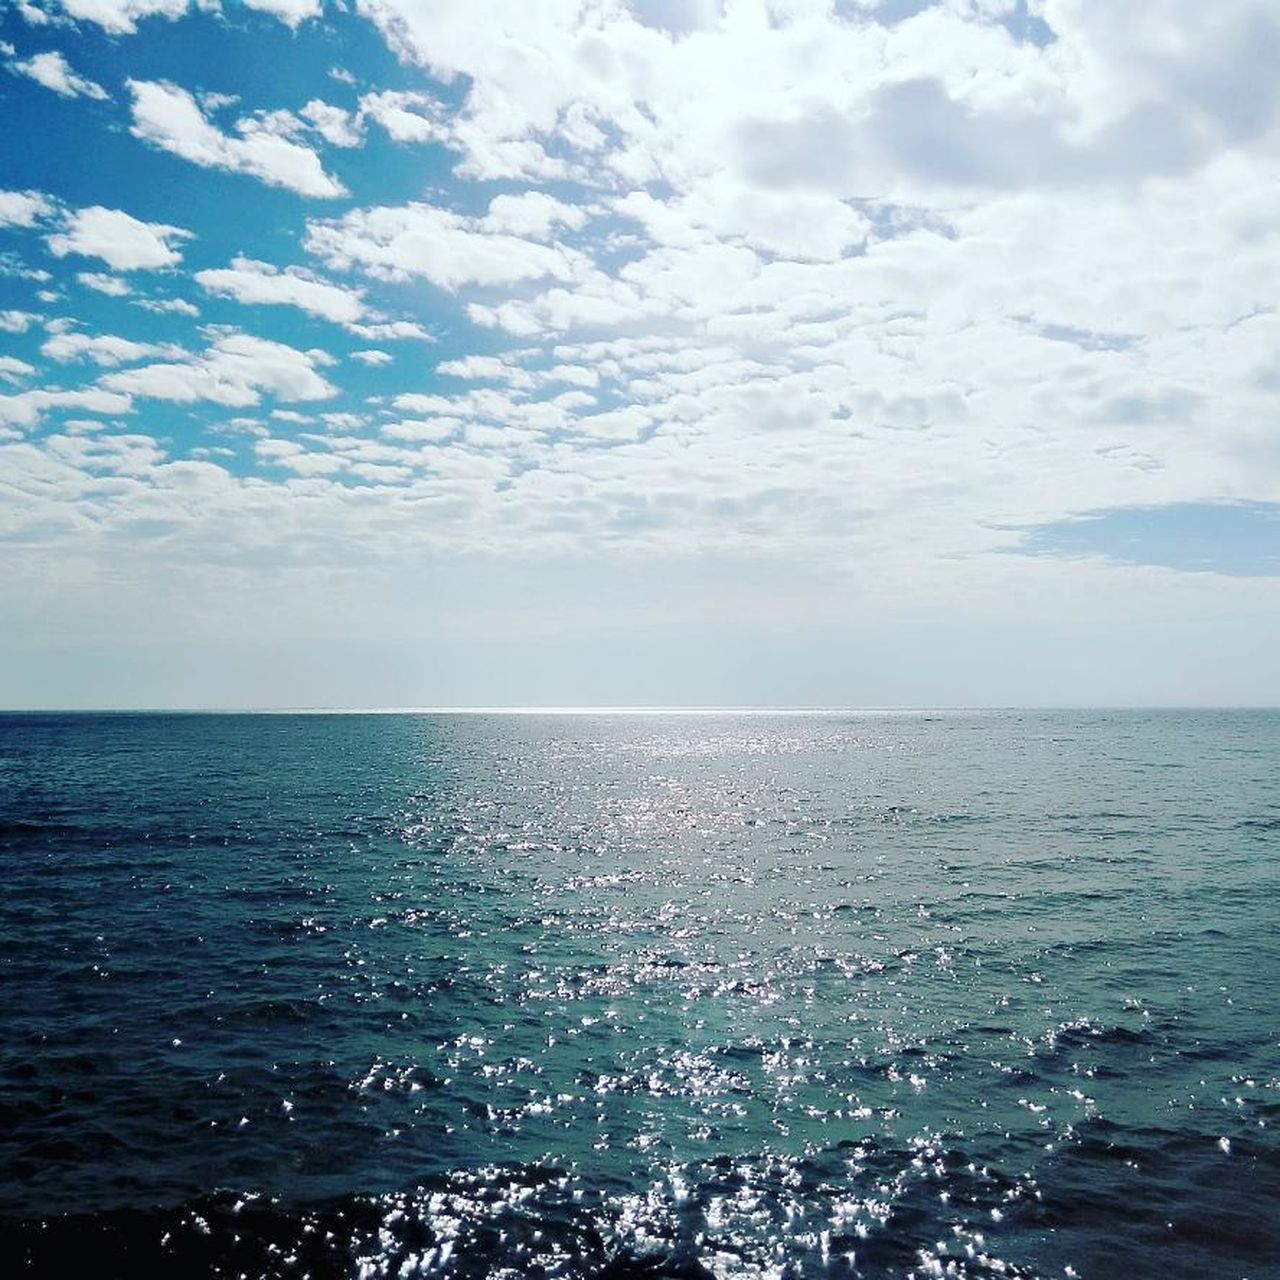 sea, horizon over water, water, sky, beauty in nature, cloud - sky, scenics, nature, tranquility, tranquil scene, no people, outdoors, rippled, day, horizon